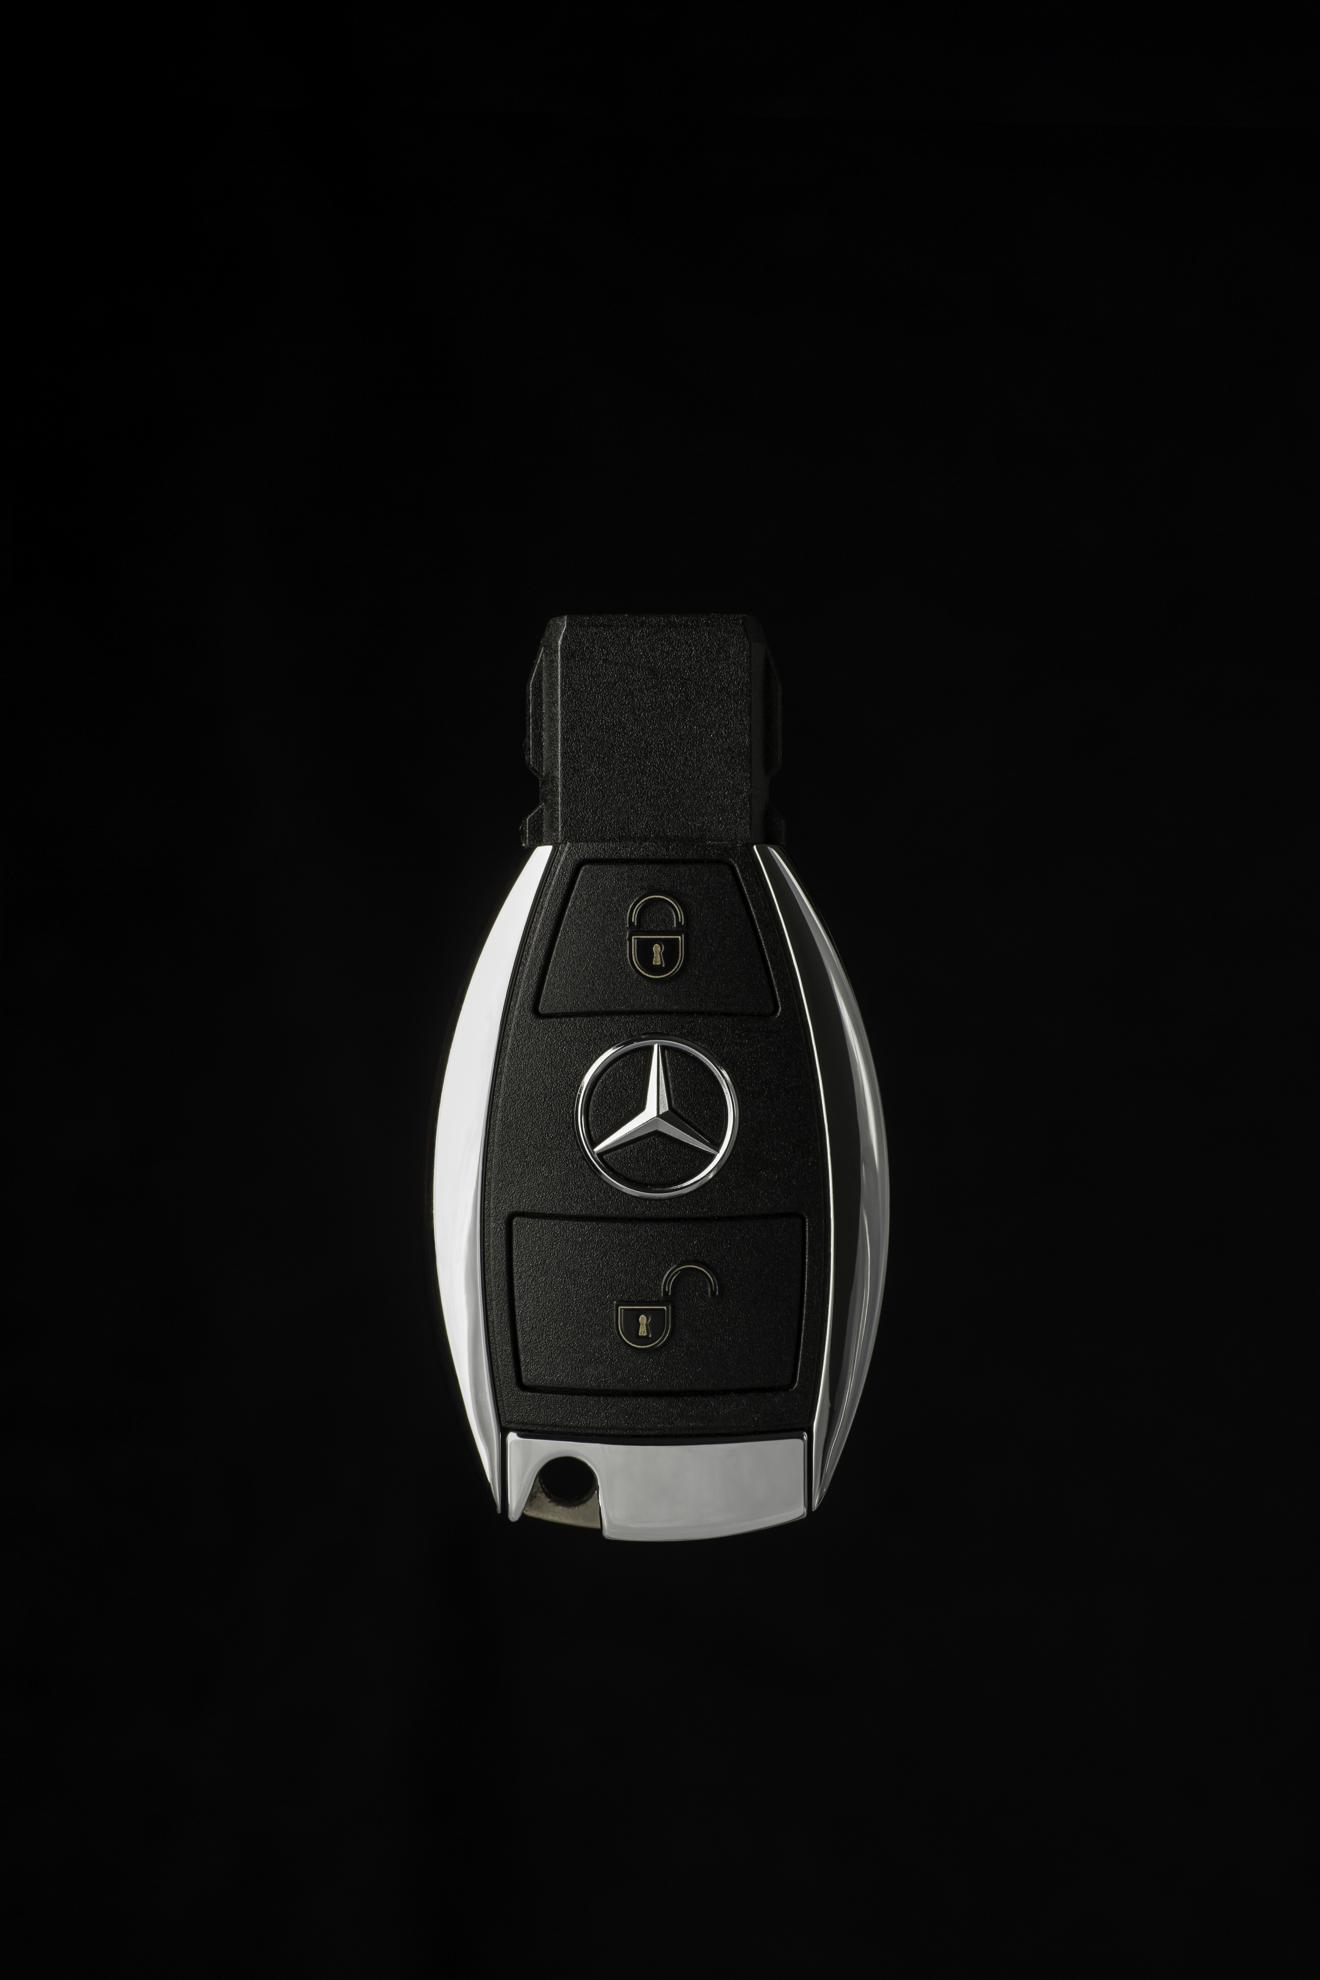 Mercedes benz keys to goodwood festival of speed for Mercedes benz keyes